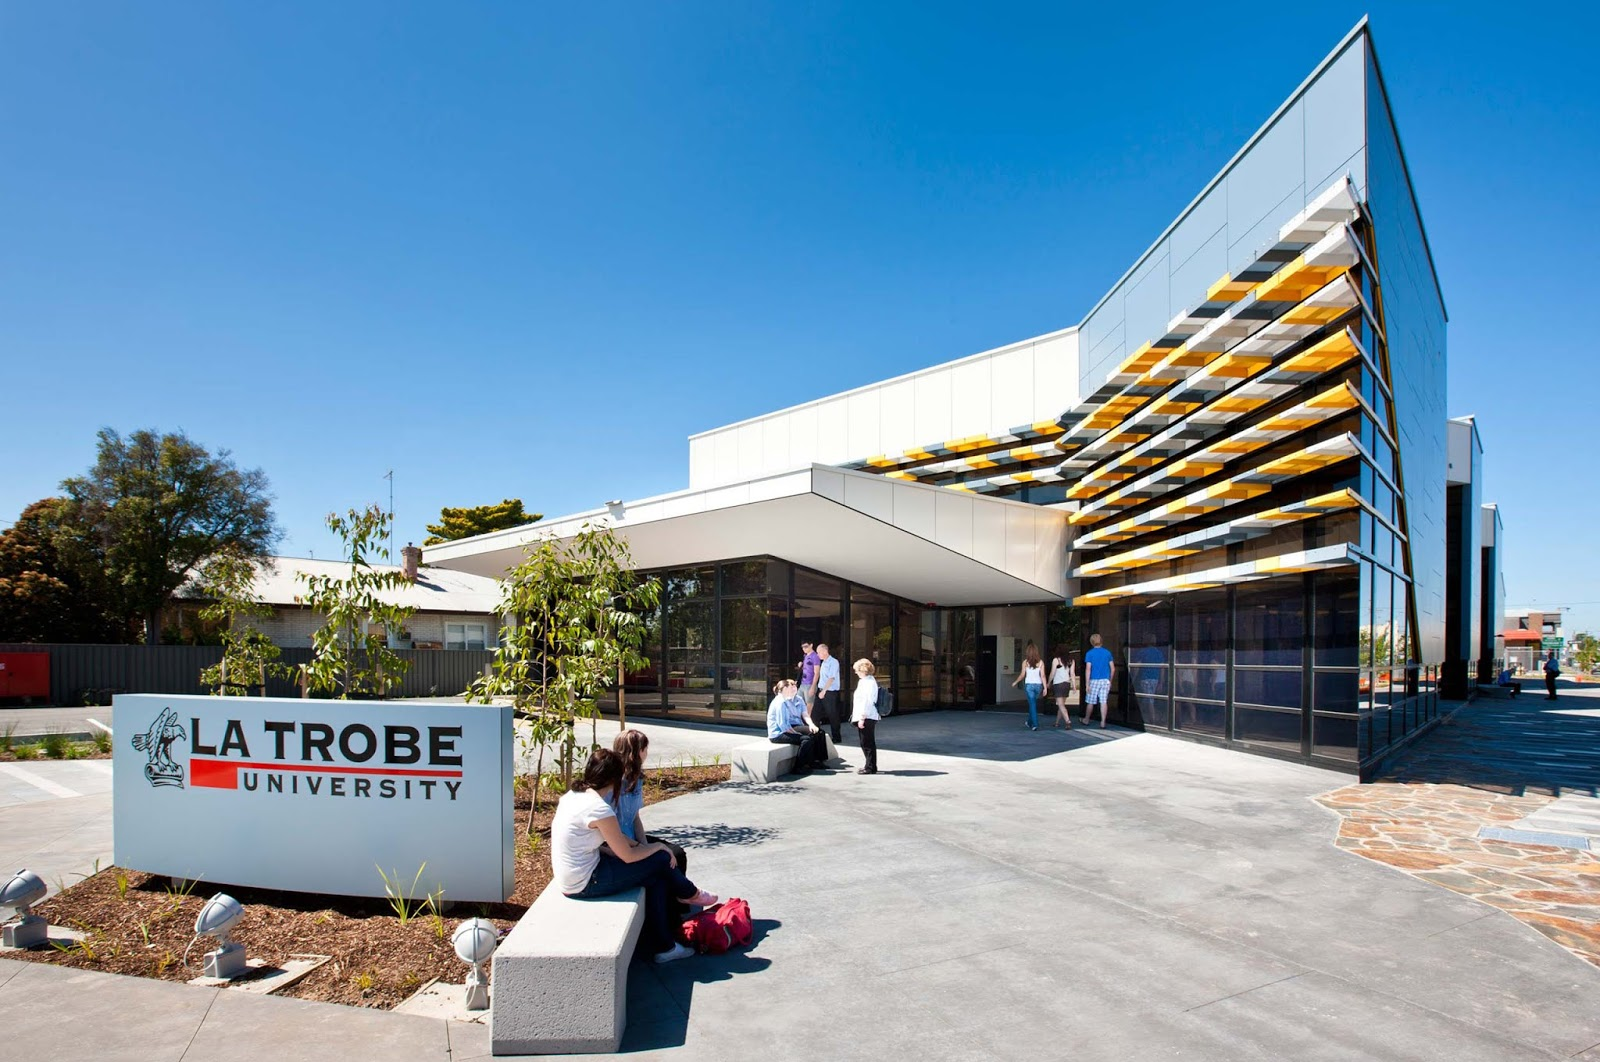 La Trobe University, Melbourne Campus